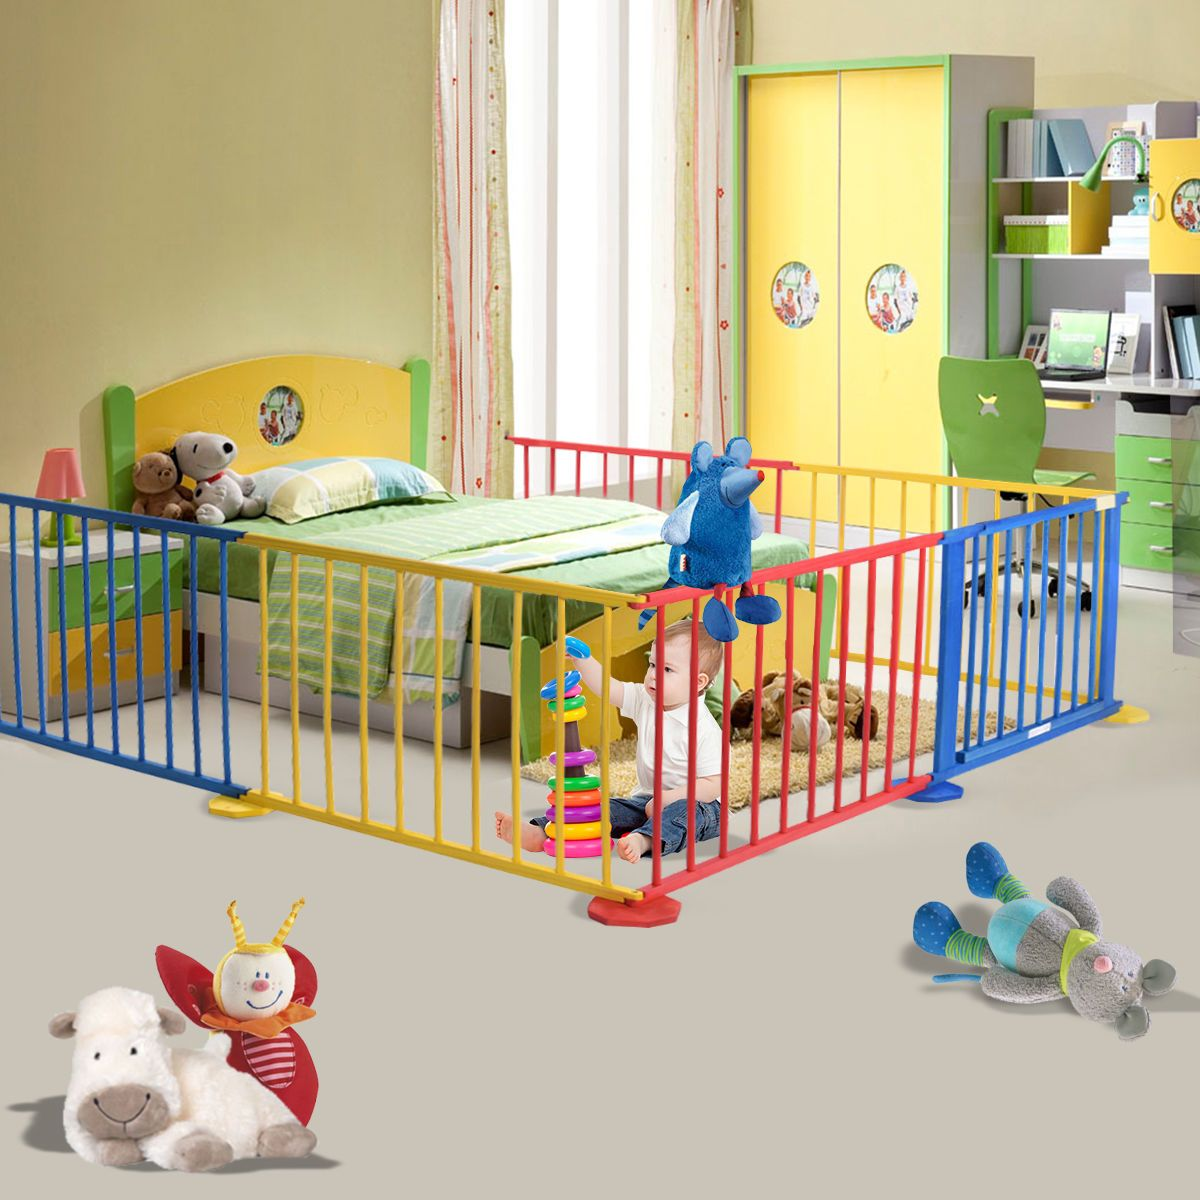 Baby playpen 6 panel colors wooden frame children playard for Play yard plans